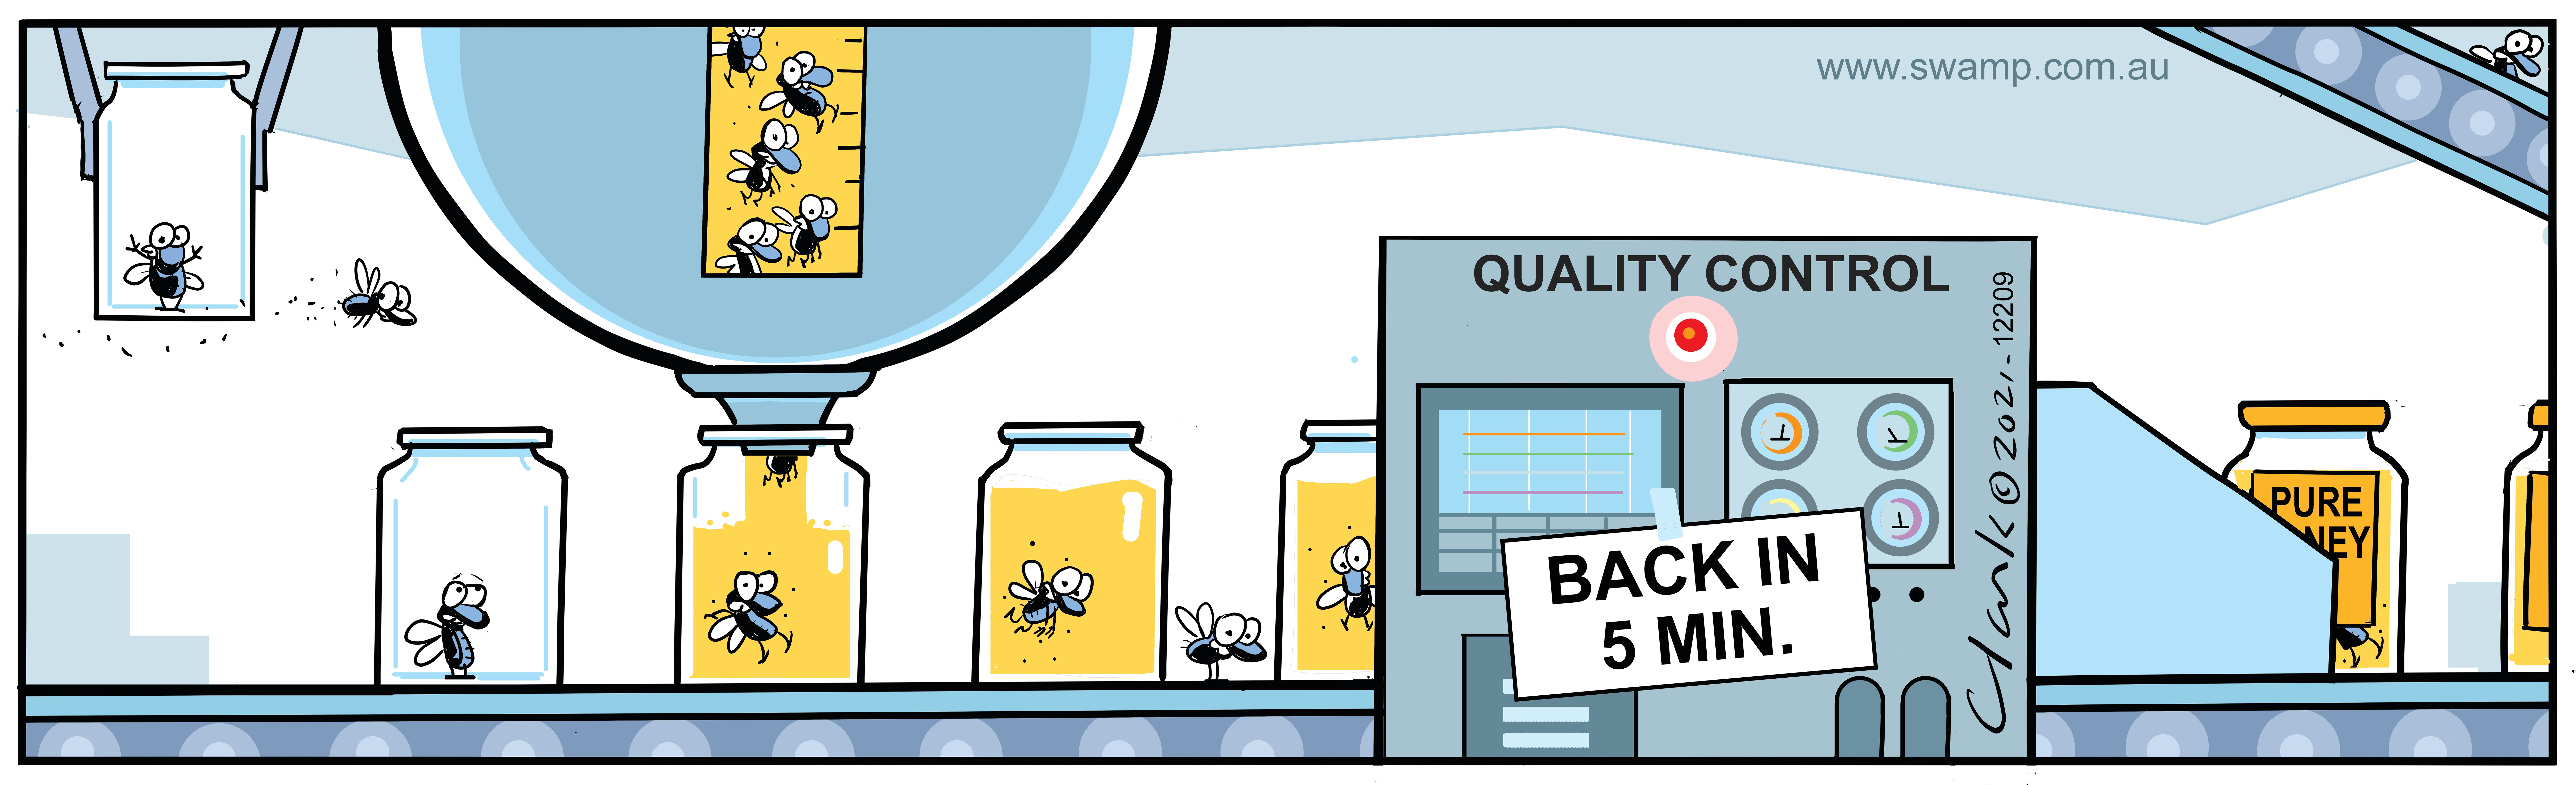 Factory Quality Control